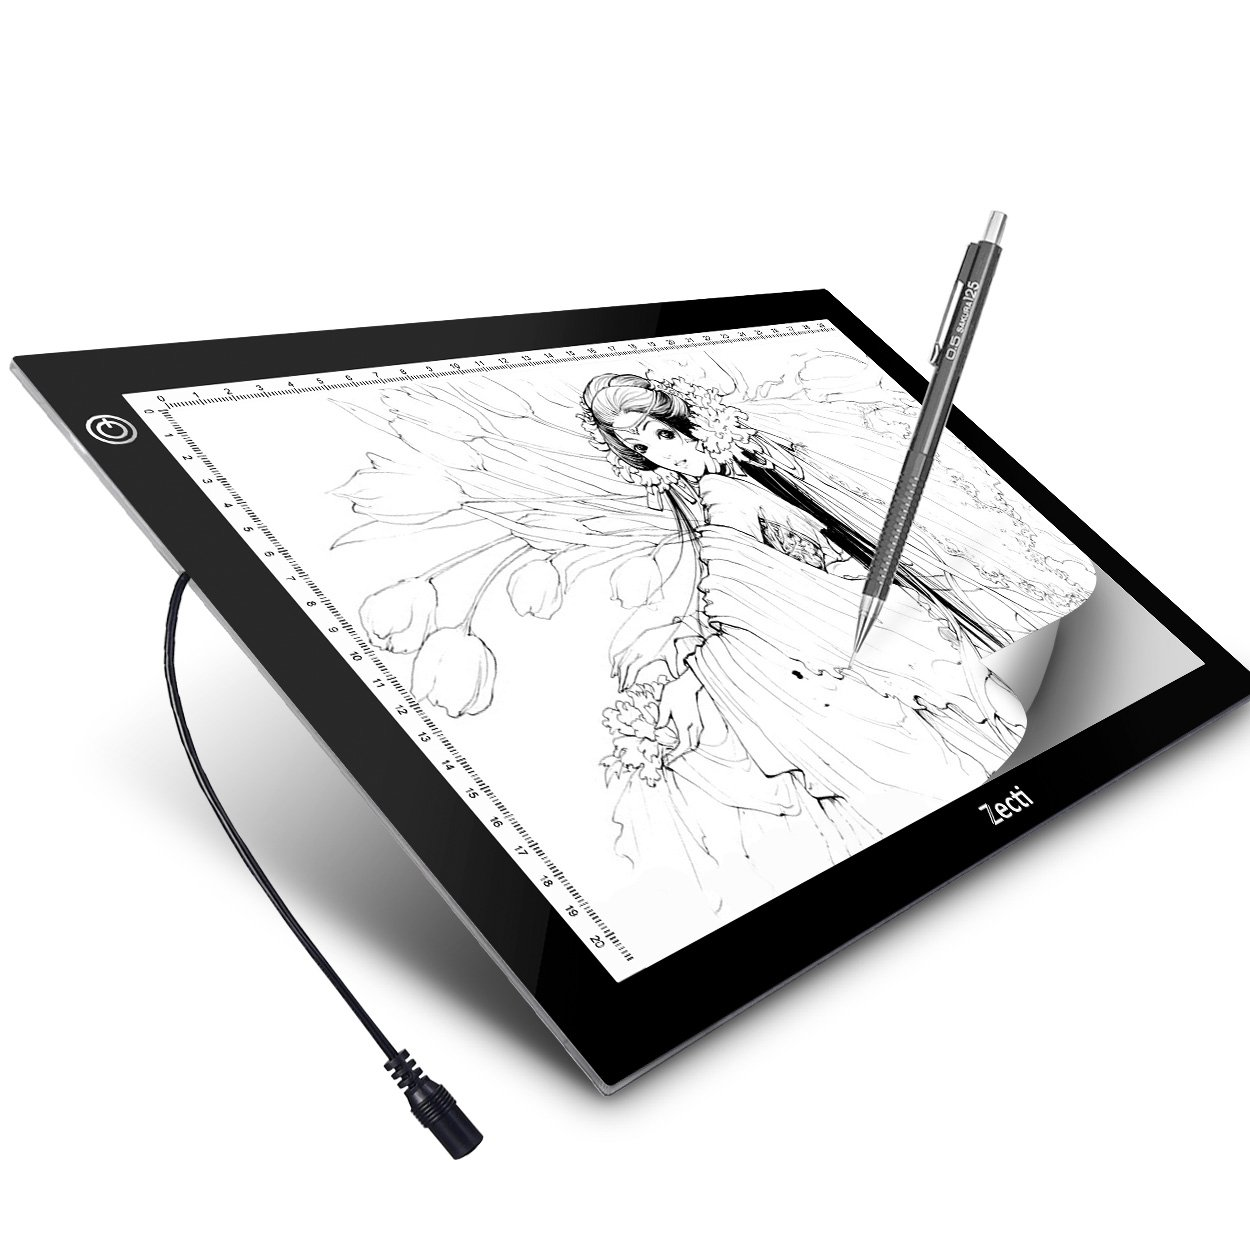 A4 LED Light Box Zecti A4 6-Level Brightness Tracing Light Pad for Artists Drawing Sketching Animation Stencil Tattoo 13.7x10.2 Inch (13.7x10.2x0.19inch)